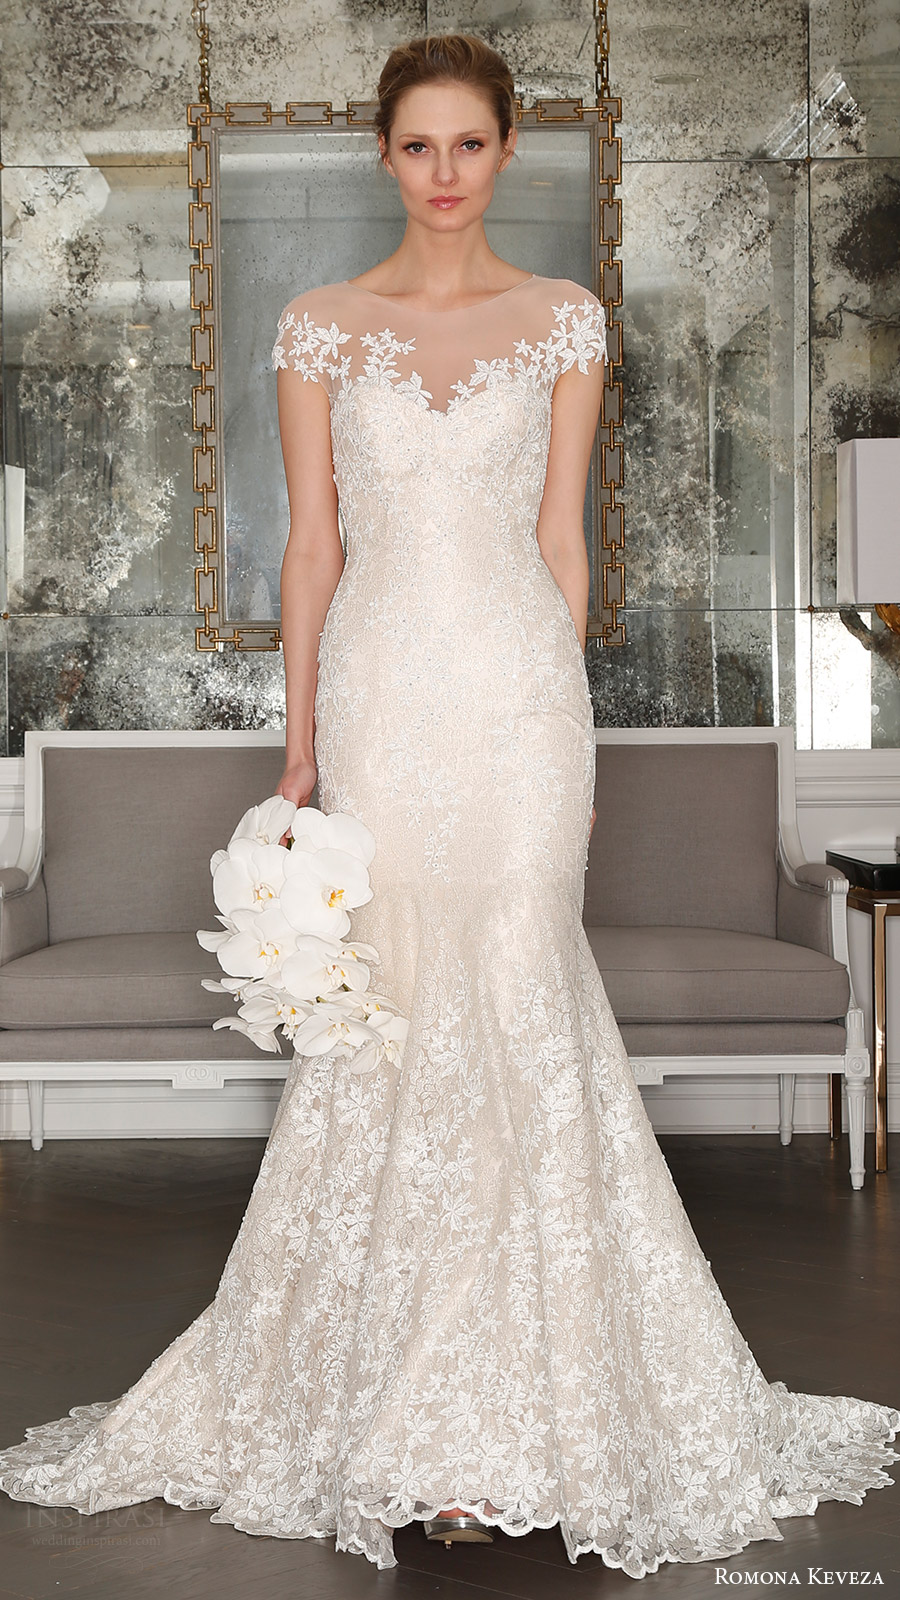 romona keveza bridal spring 2017 illusion cap sleeves trumpet wedding dres (rk7407) mv